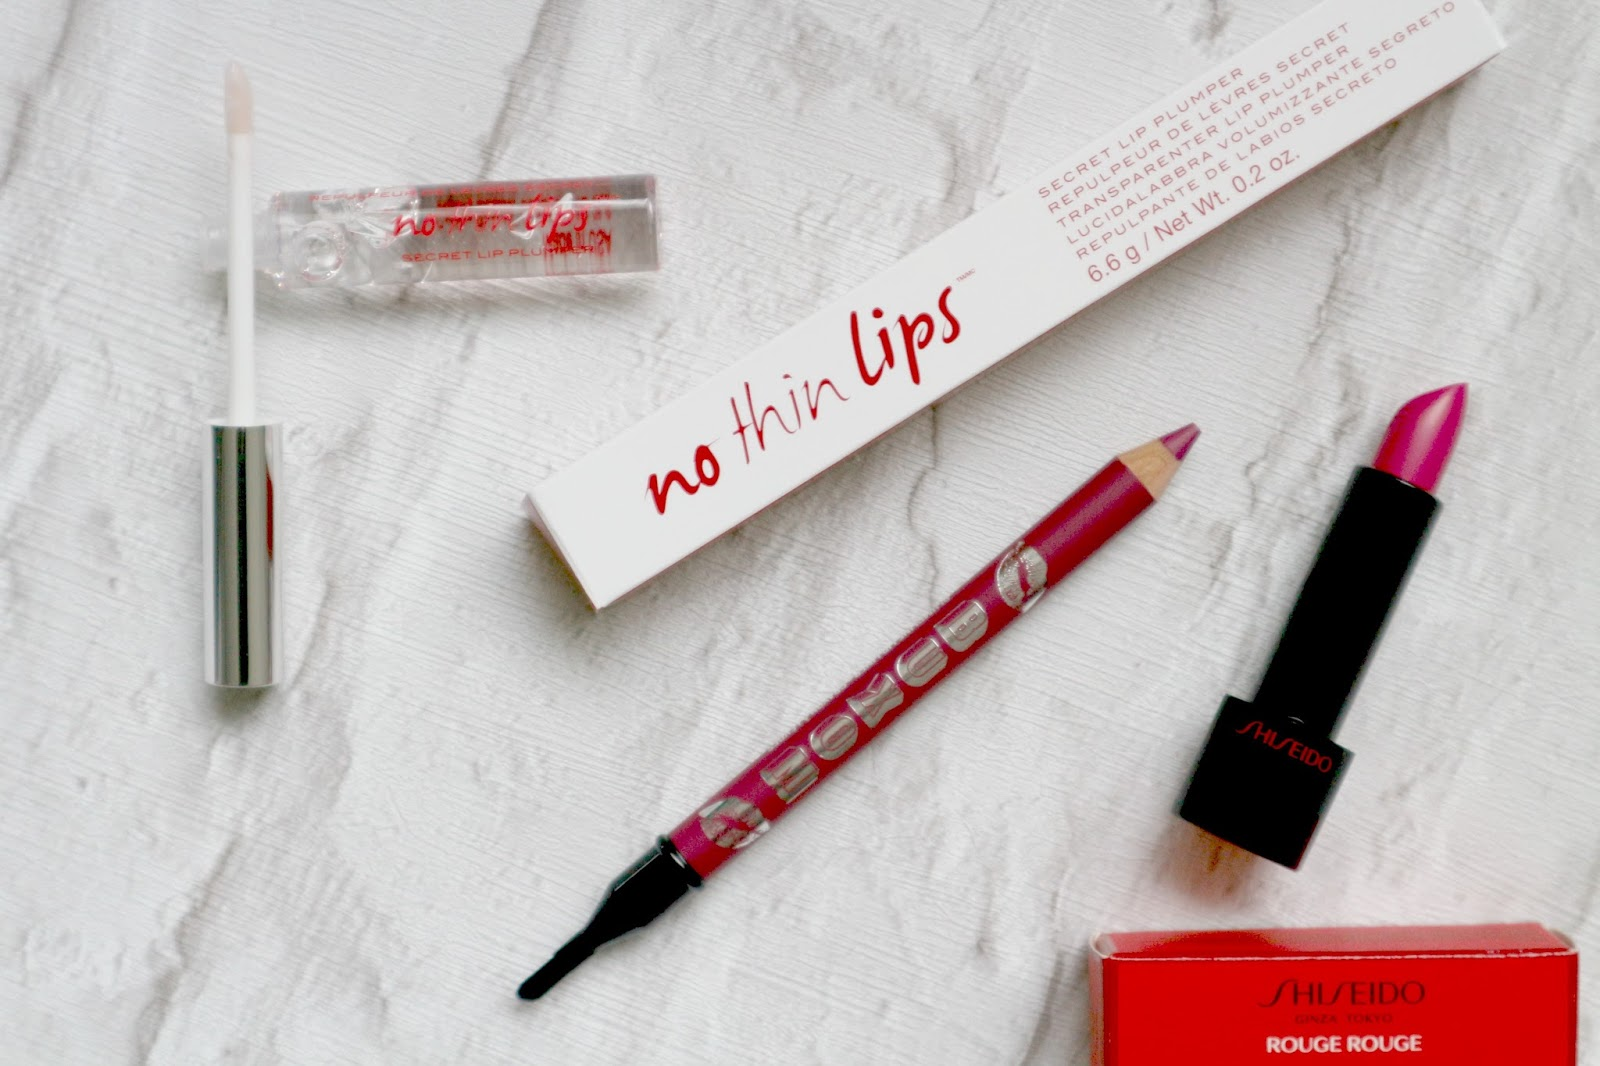 BUXOM Plumpline Lip Liner Review